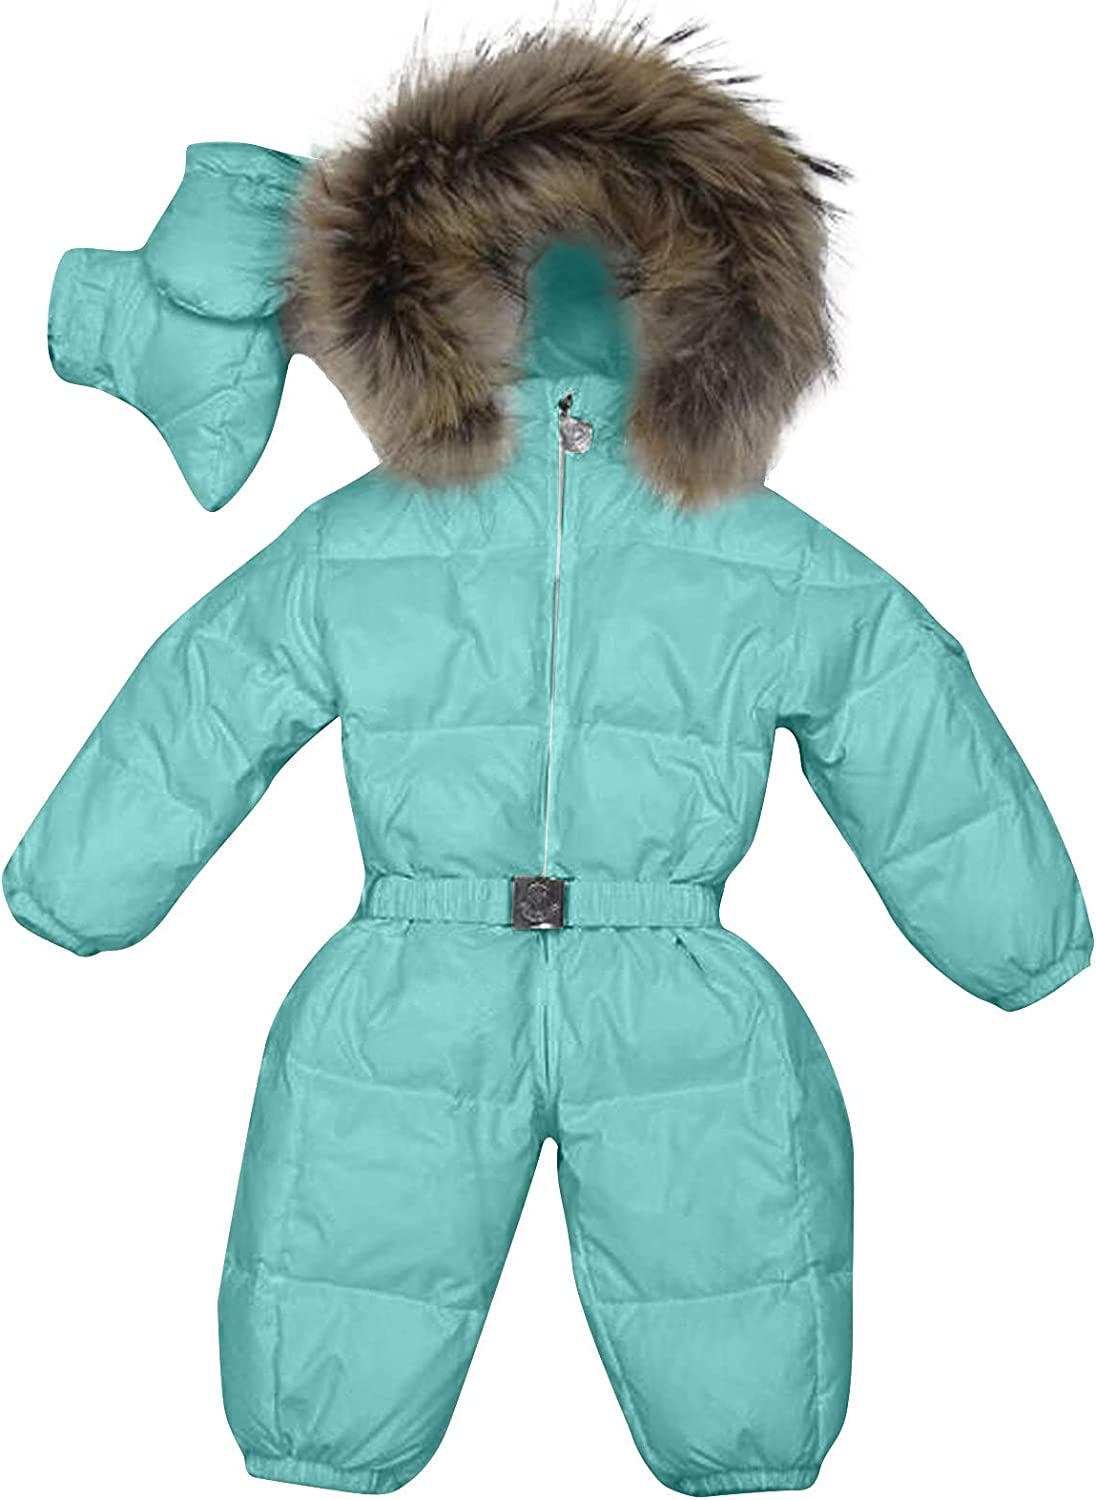 Winter Infant Baby Boy Girl Jumpsuit Romper Charlotte Mall Milwaukee Mall Hooded Jacket Cotton